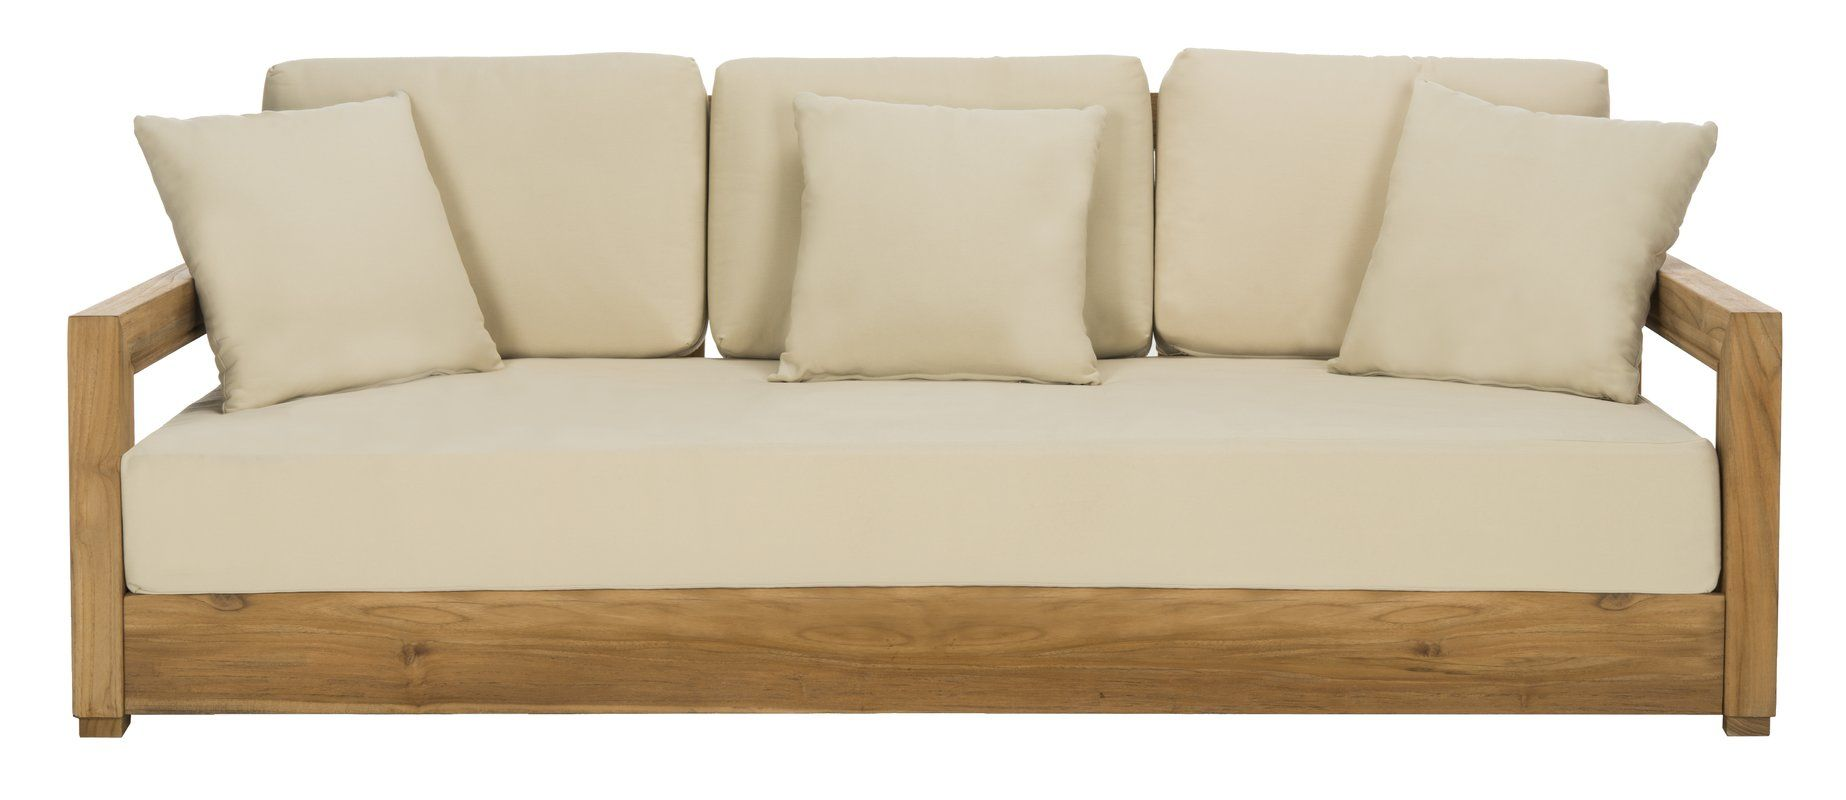 Admirable Lakeland Patio Sofa With Cushions Outdoor Lounge Outdoor Alphanode Cool Chair Designs And Ideas Alphanodeonline